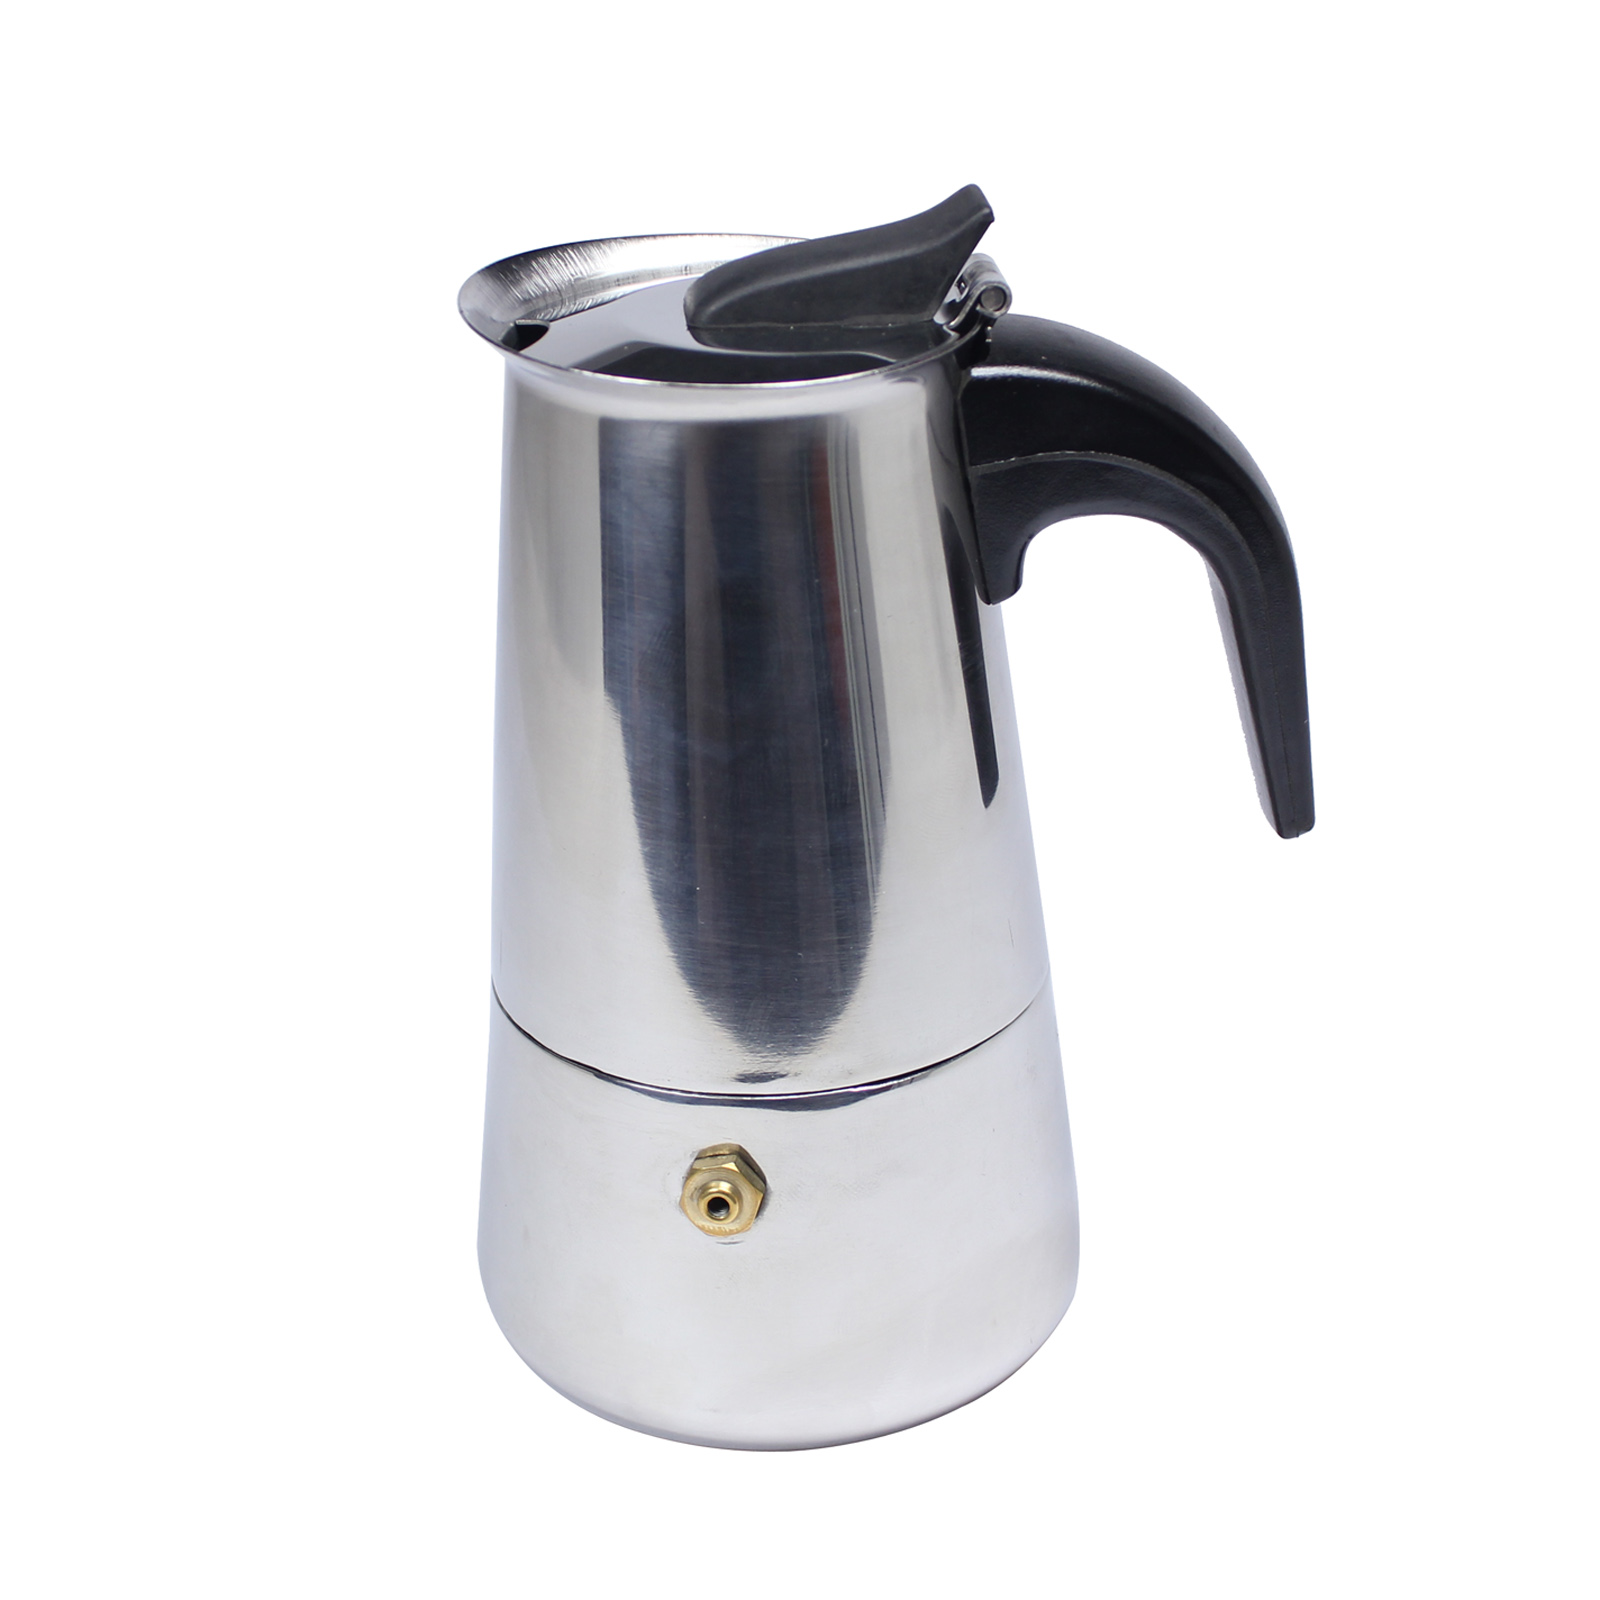 300ml Italian Espresso Coffee Maker Stainless Steel Moka Pot HJ360C eBay